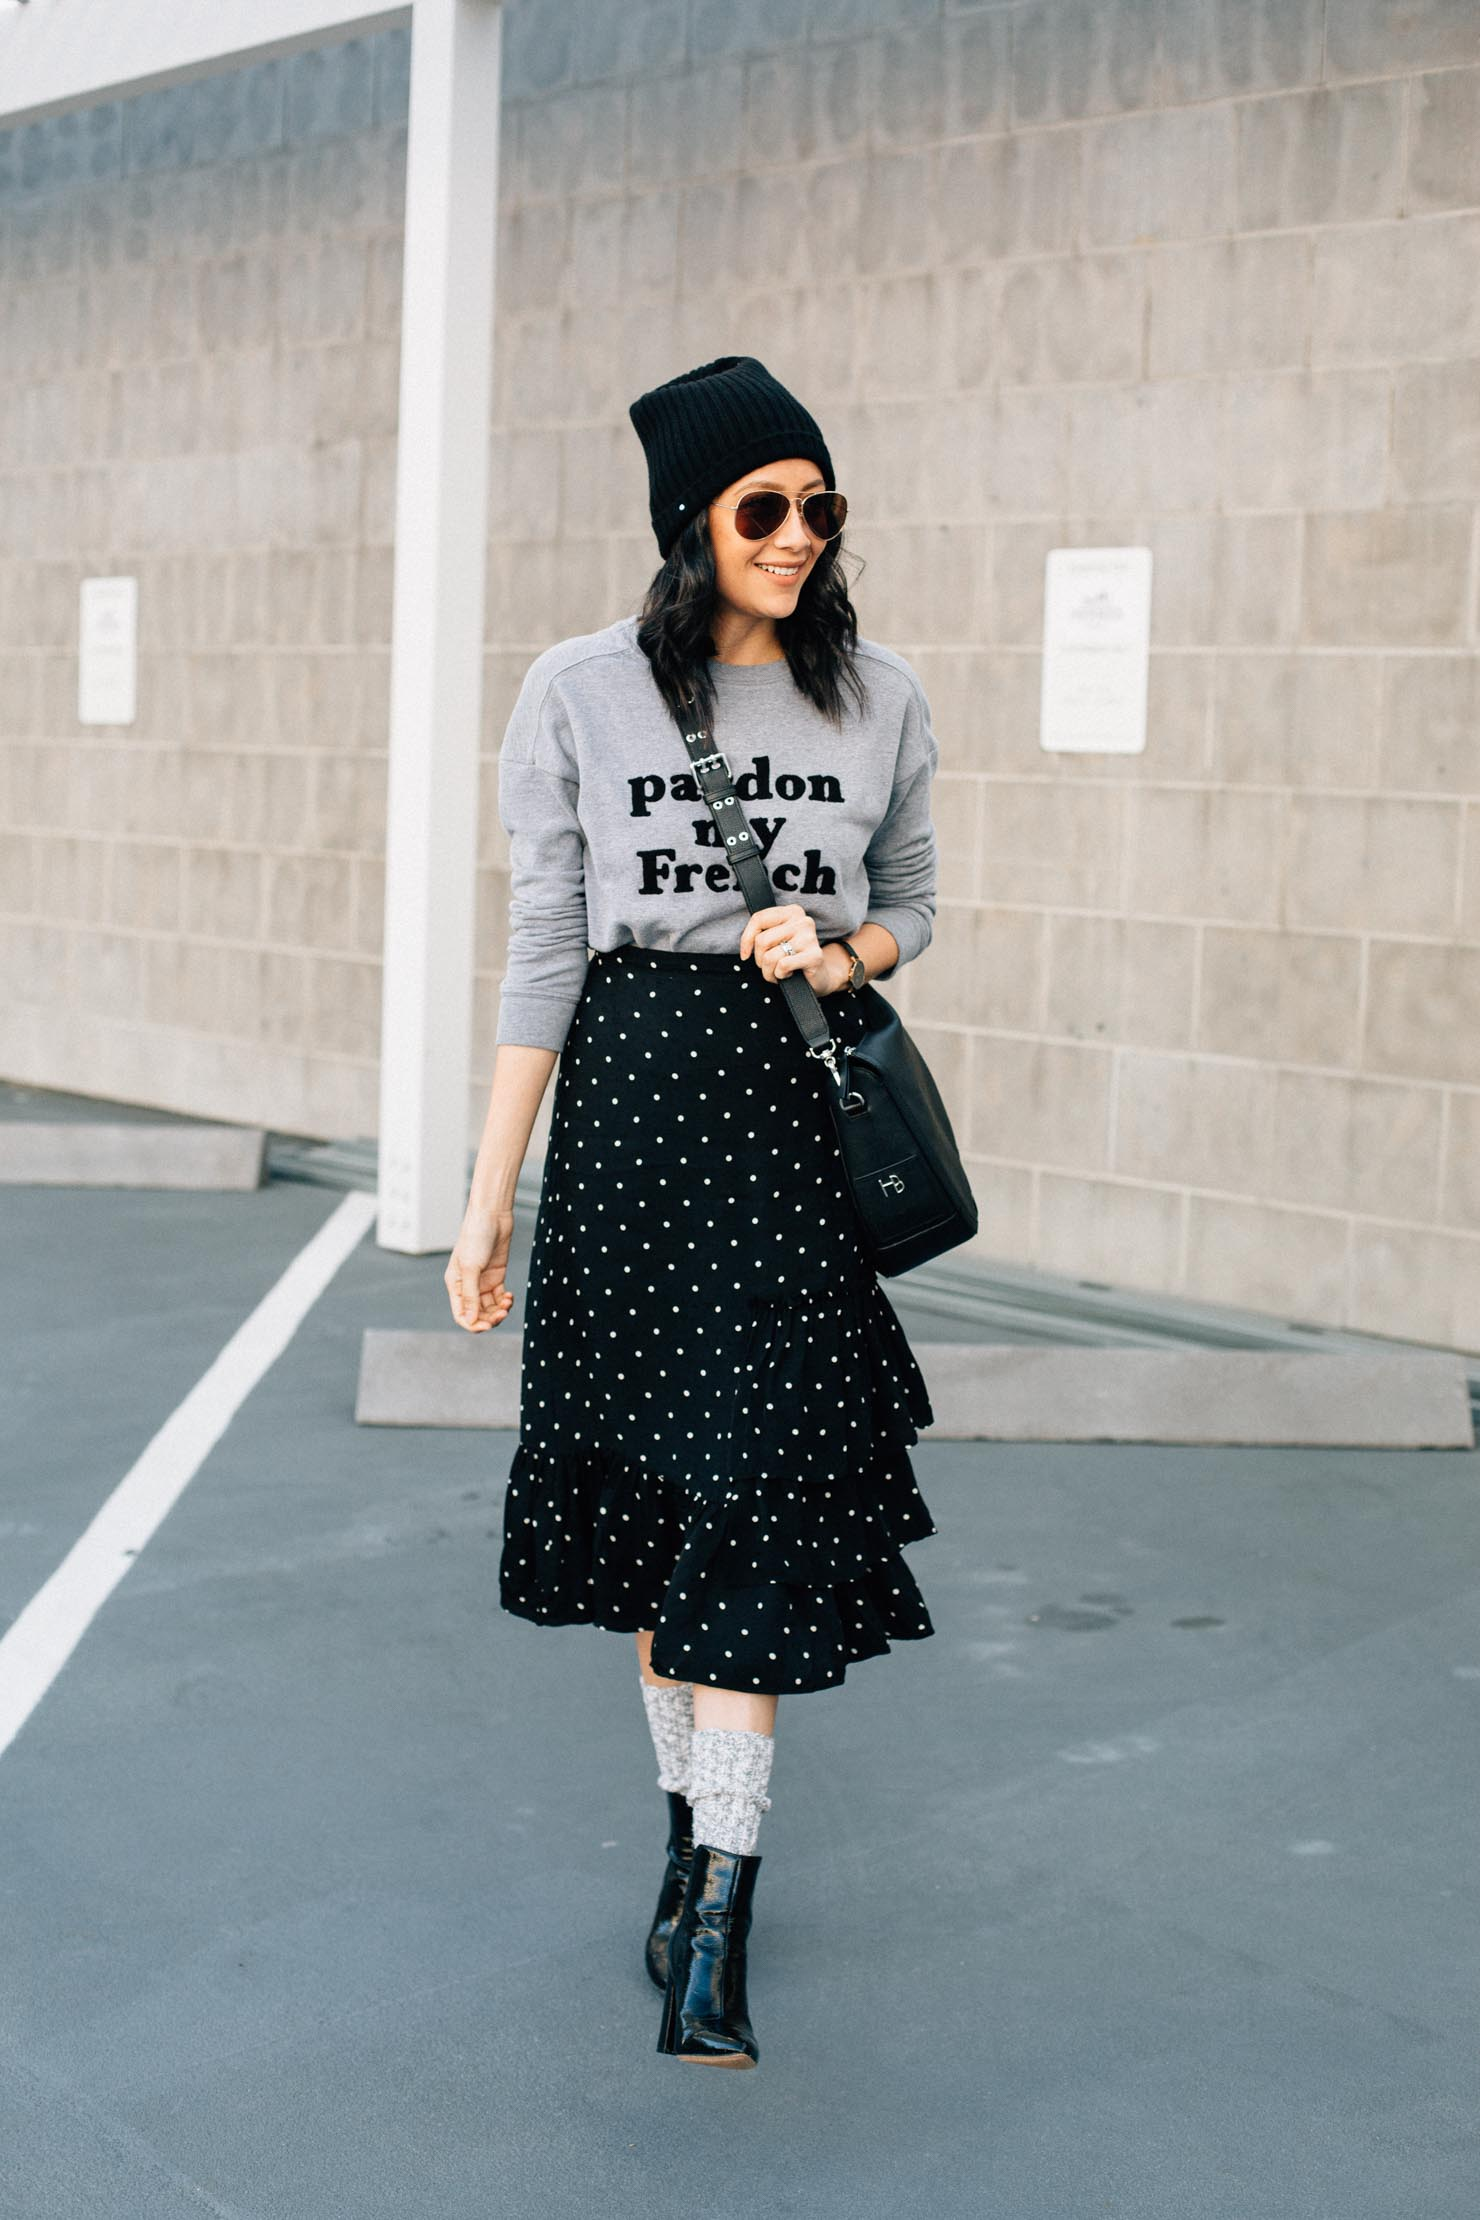 Fashion blogger Lilly Beltran styles a midi length polka dot skirt with a grey sweatshirt, grey beanie and boots & socks for an effortless chic winter outfit